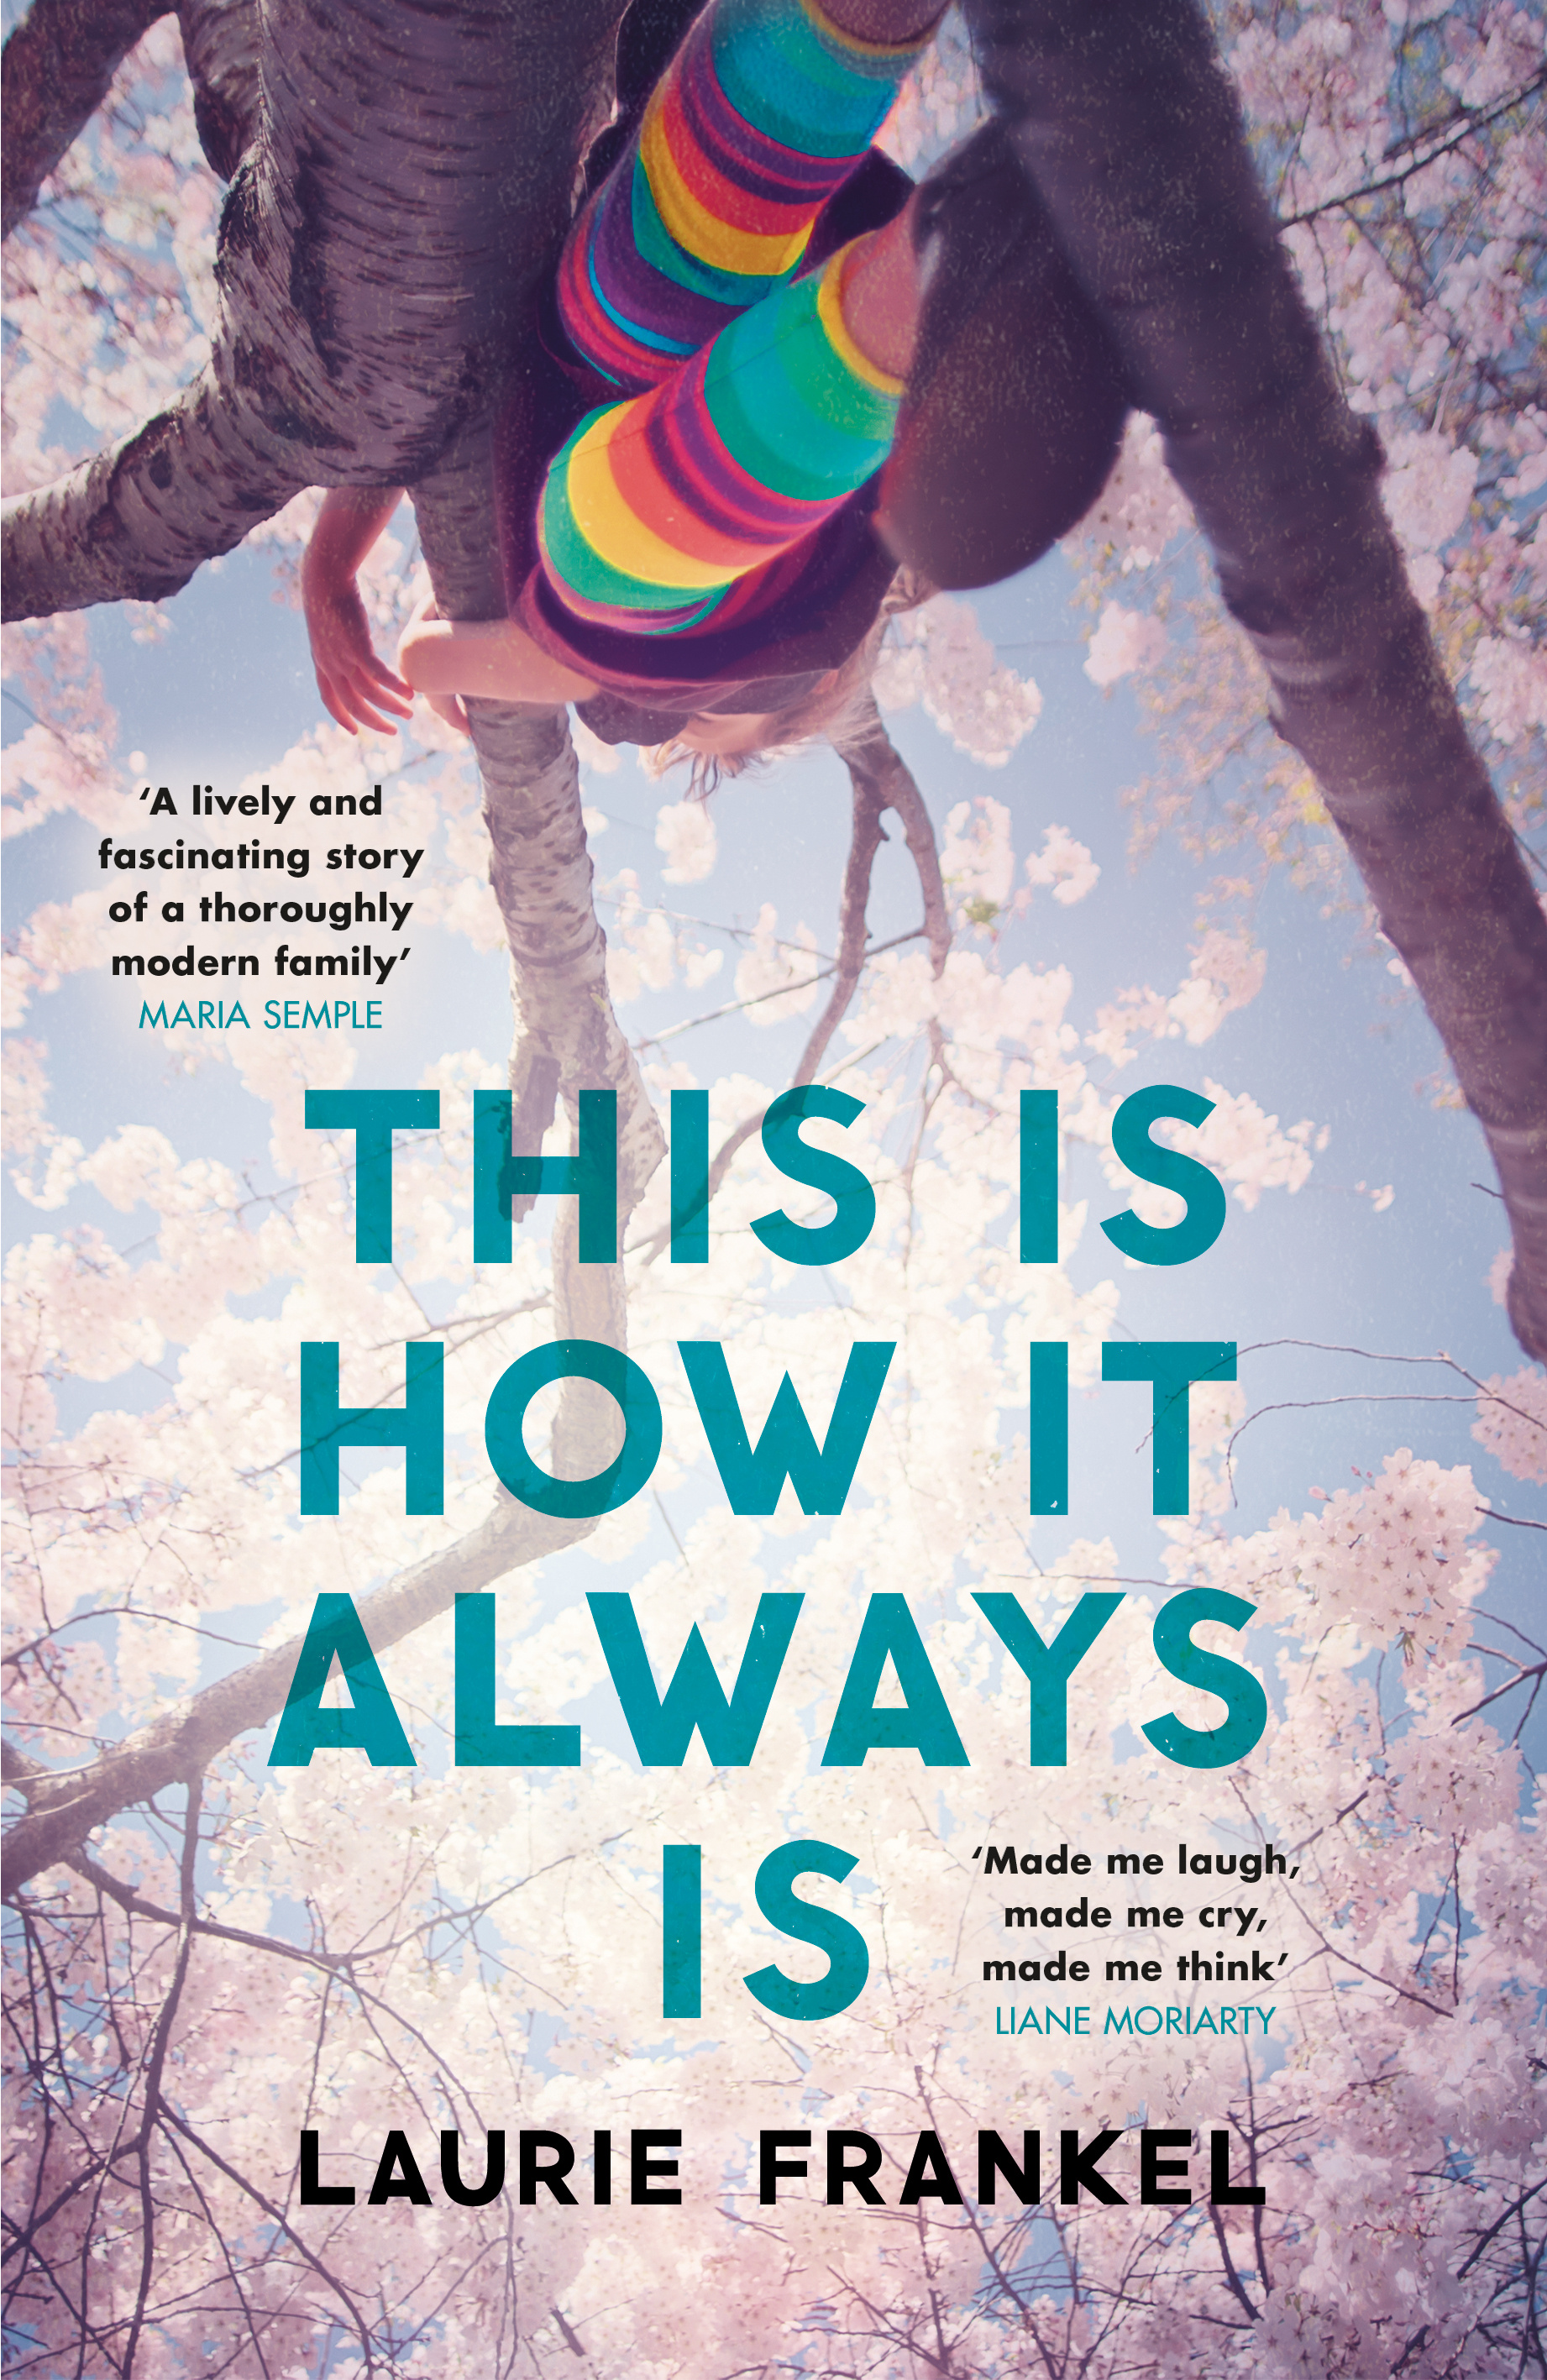 This is how it always is by Laurie Frankel: book cover. Legs encased in brightly coloured stripy socks and mary janes dangle from a branch where a girl appears to be sitting